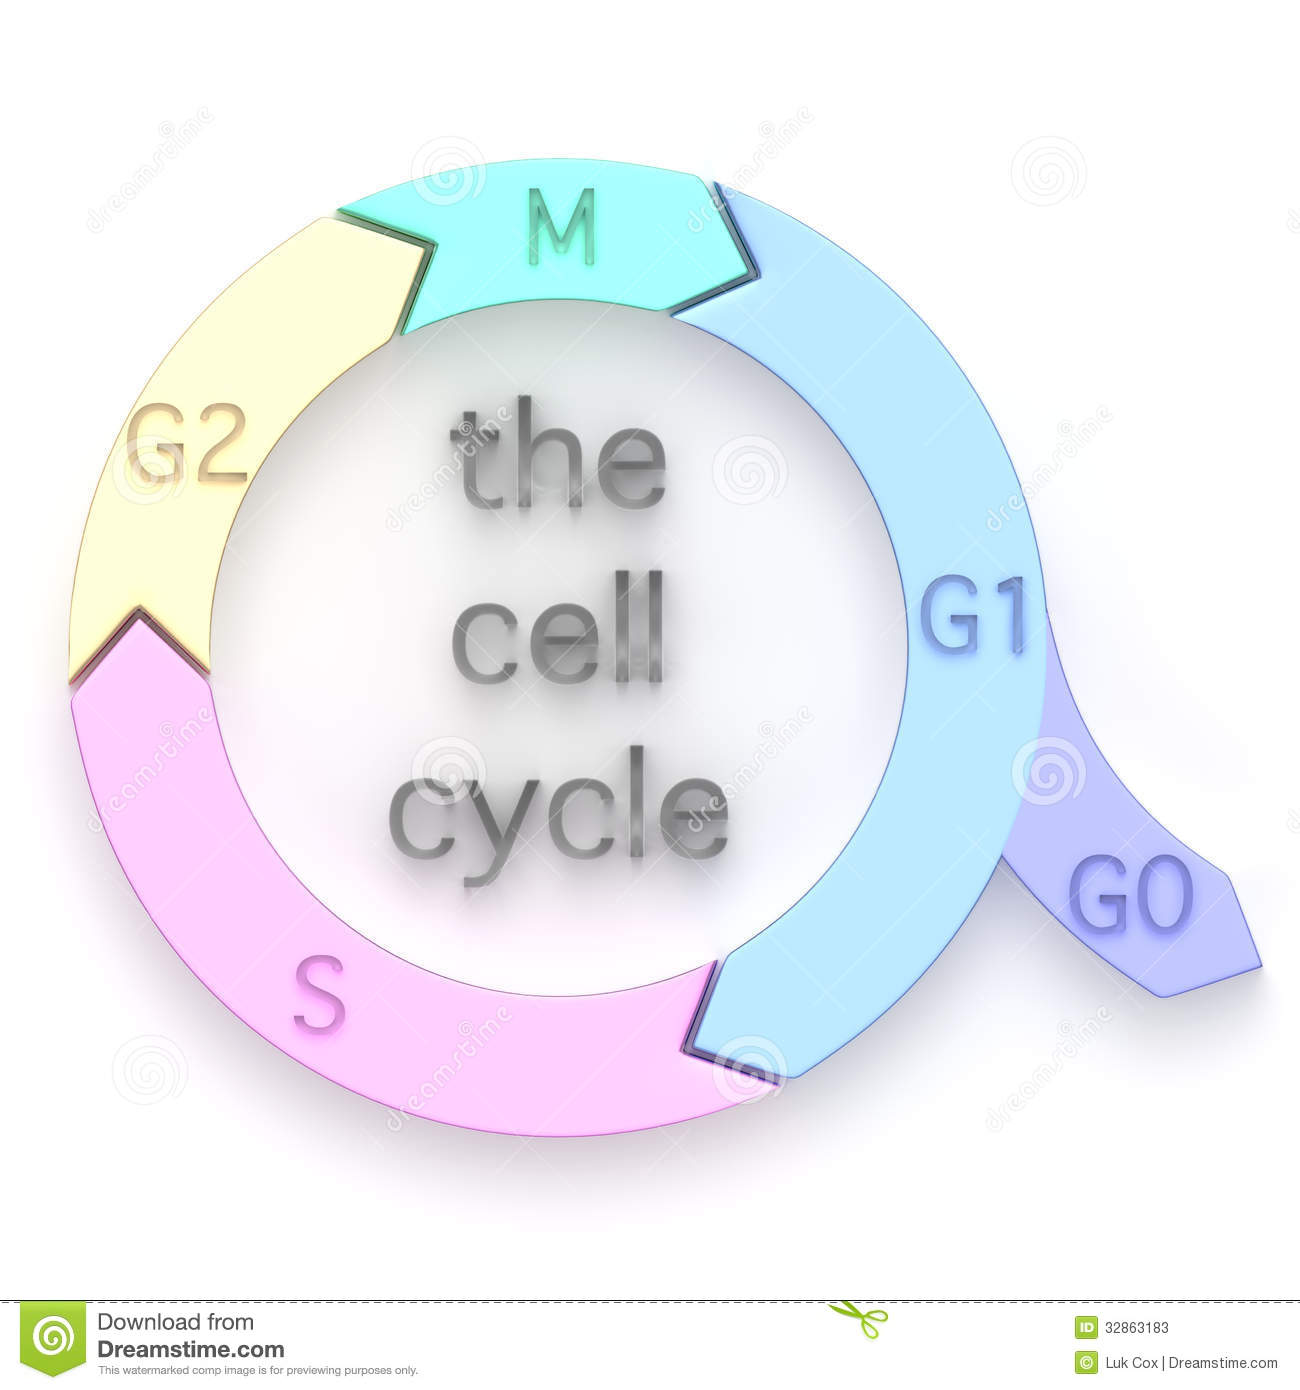 Diagram Of The Cell Cycle Stock Photos.